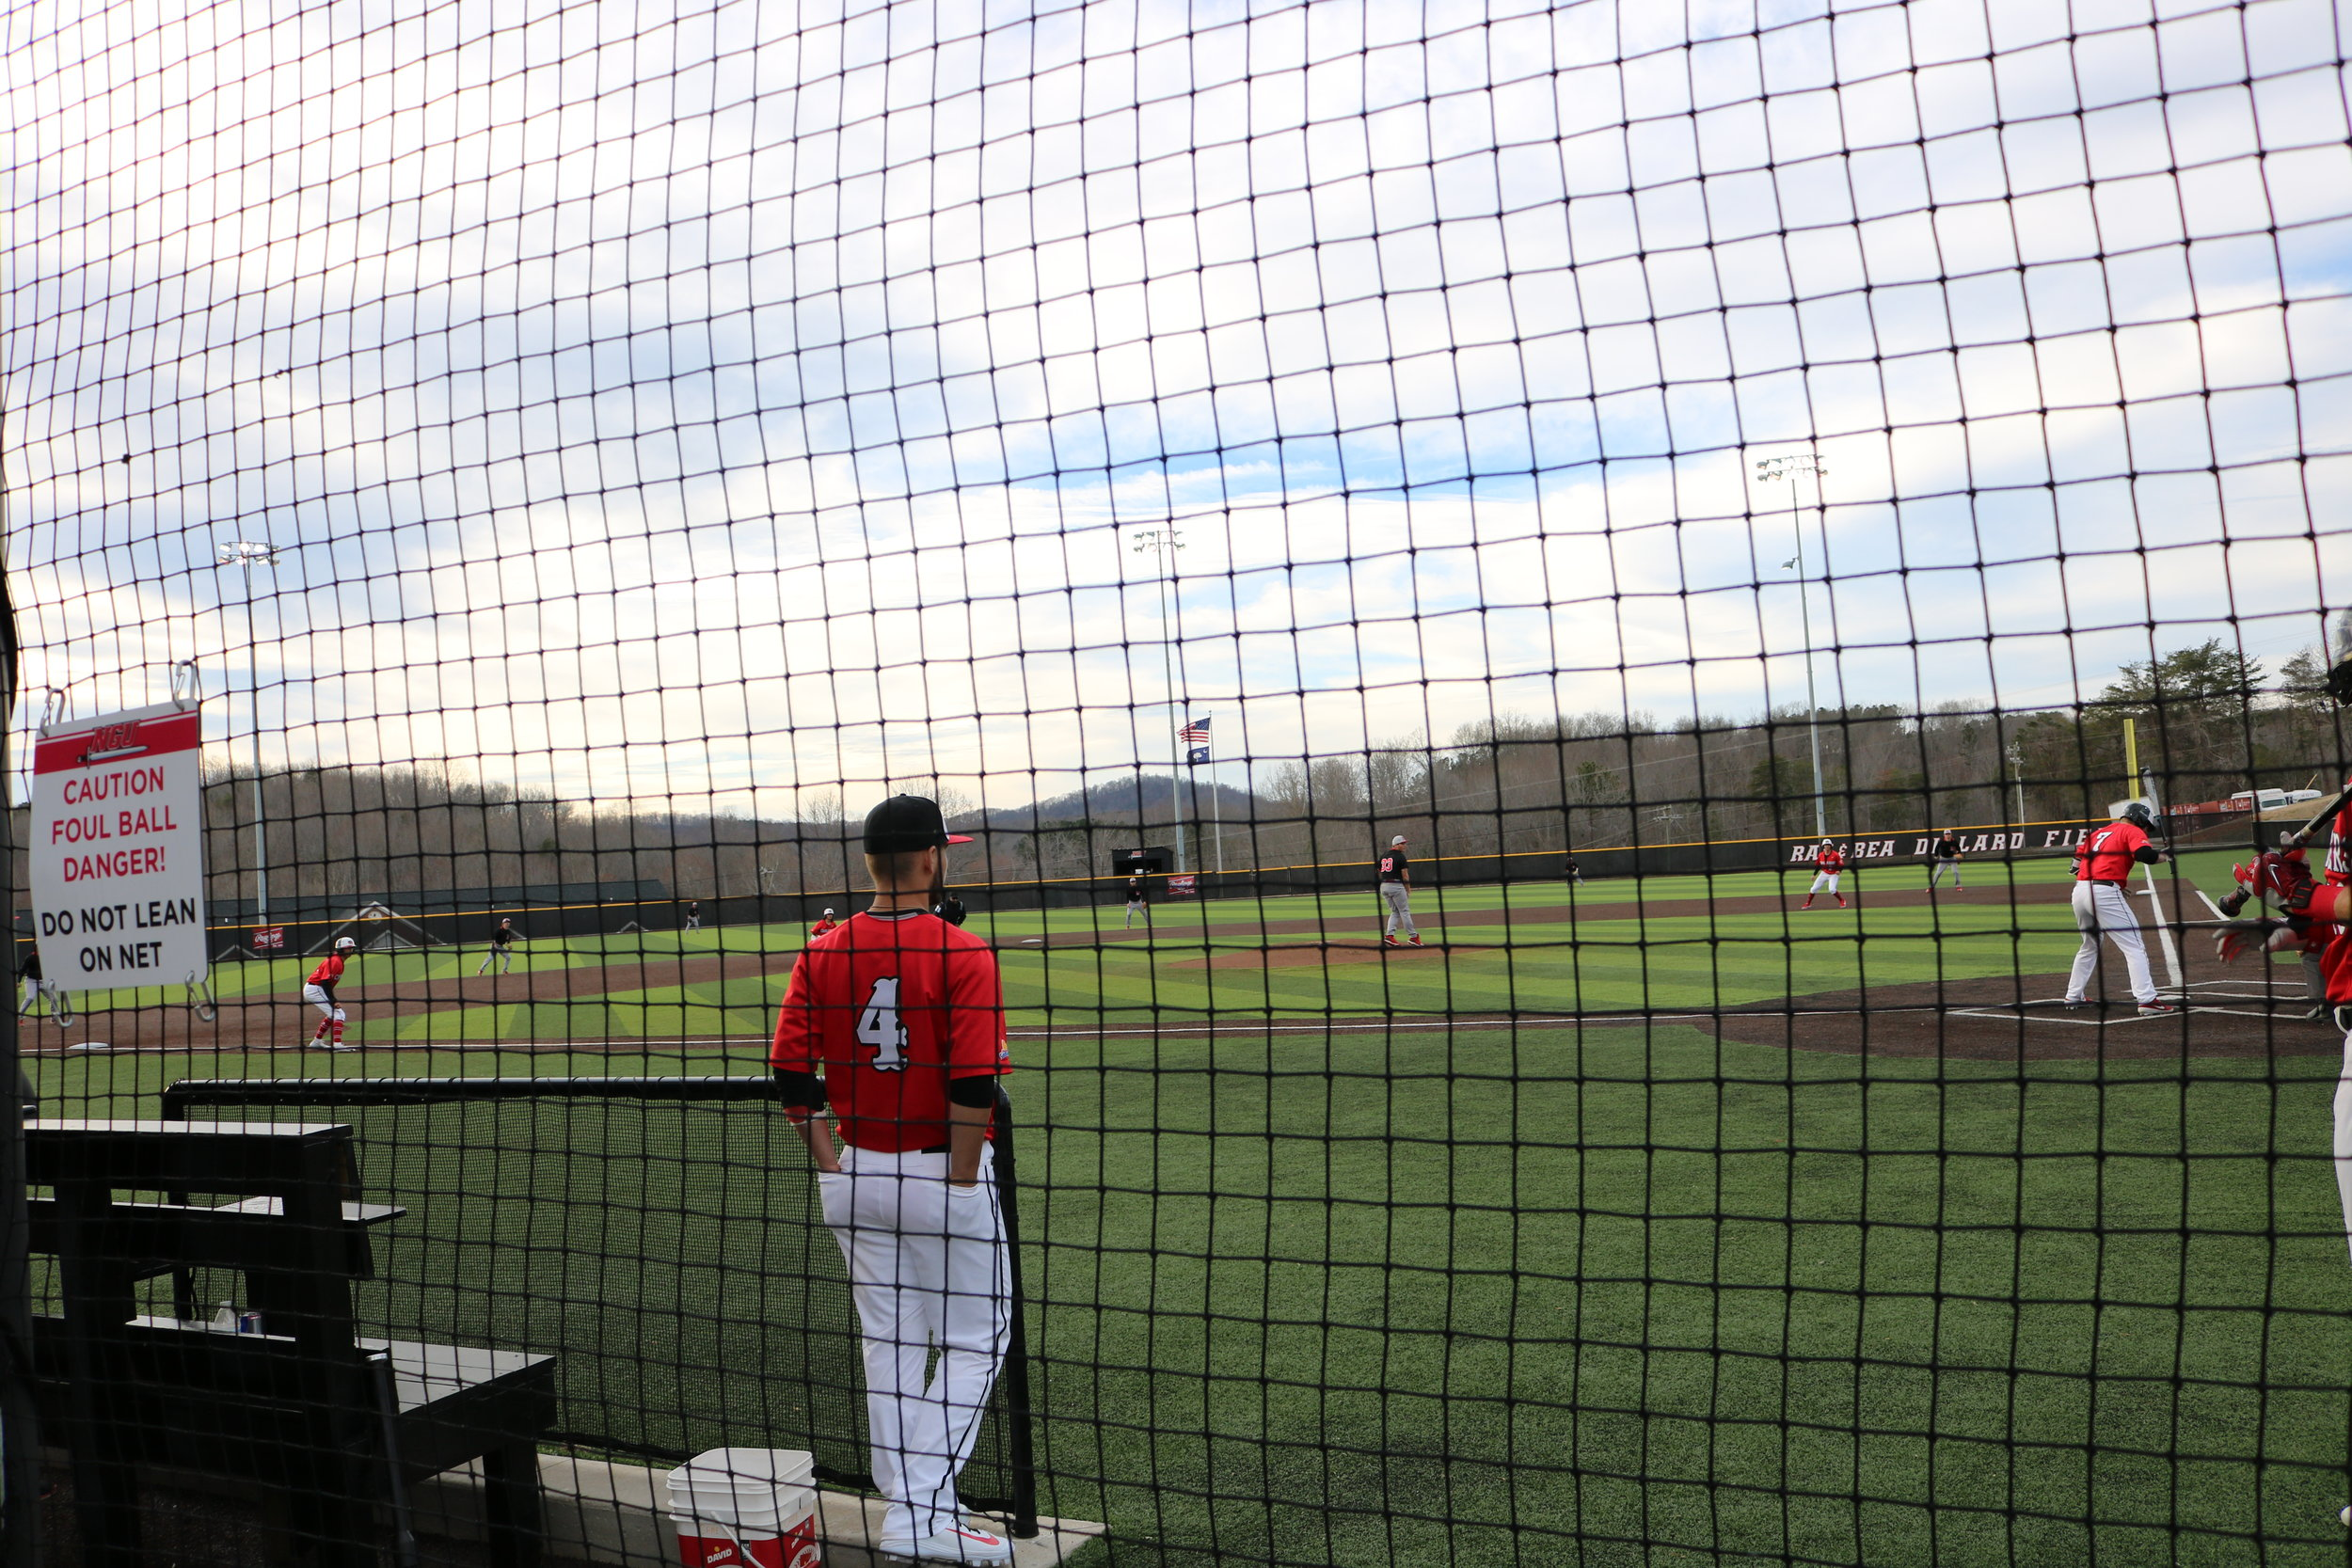 Junior Michael Neustifter (7), gets ready for the pitch, with bases loaded, while Freshman Palmer Sapp (4), watches Neustifter.